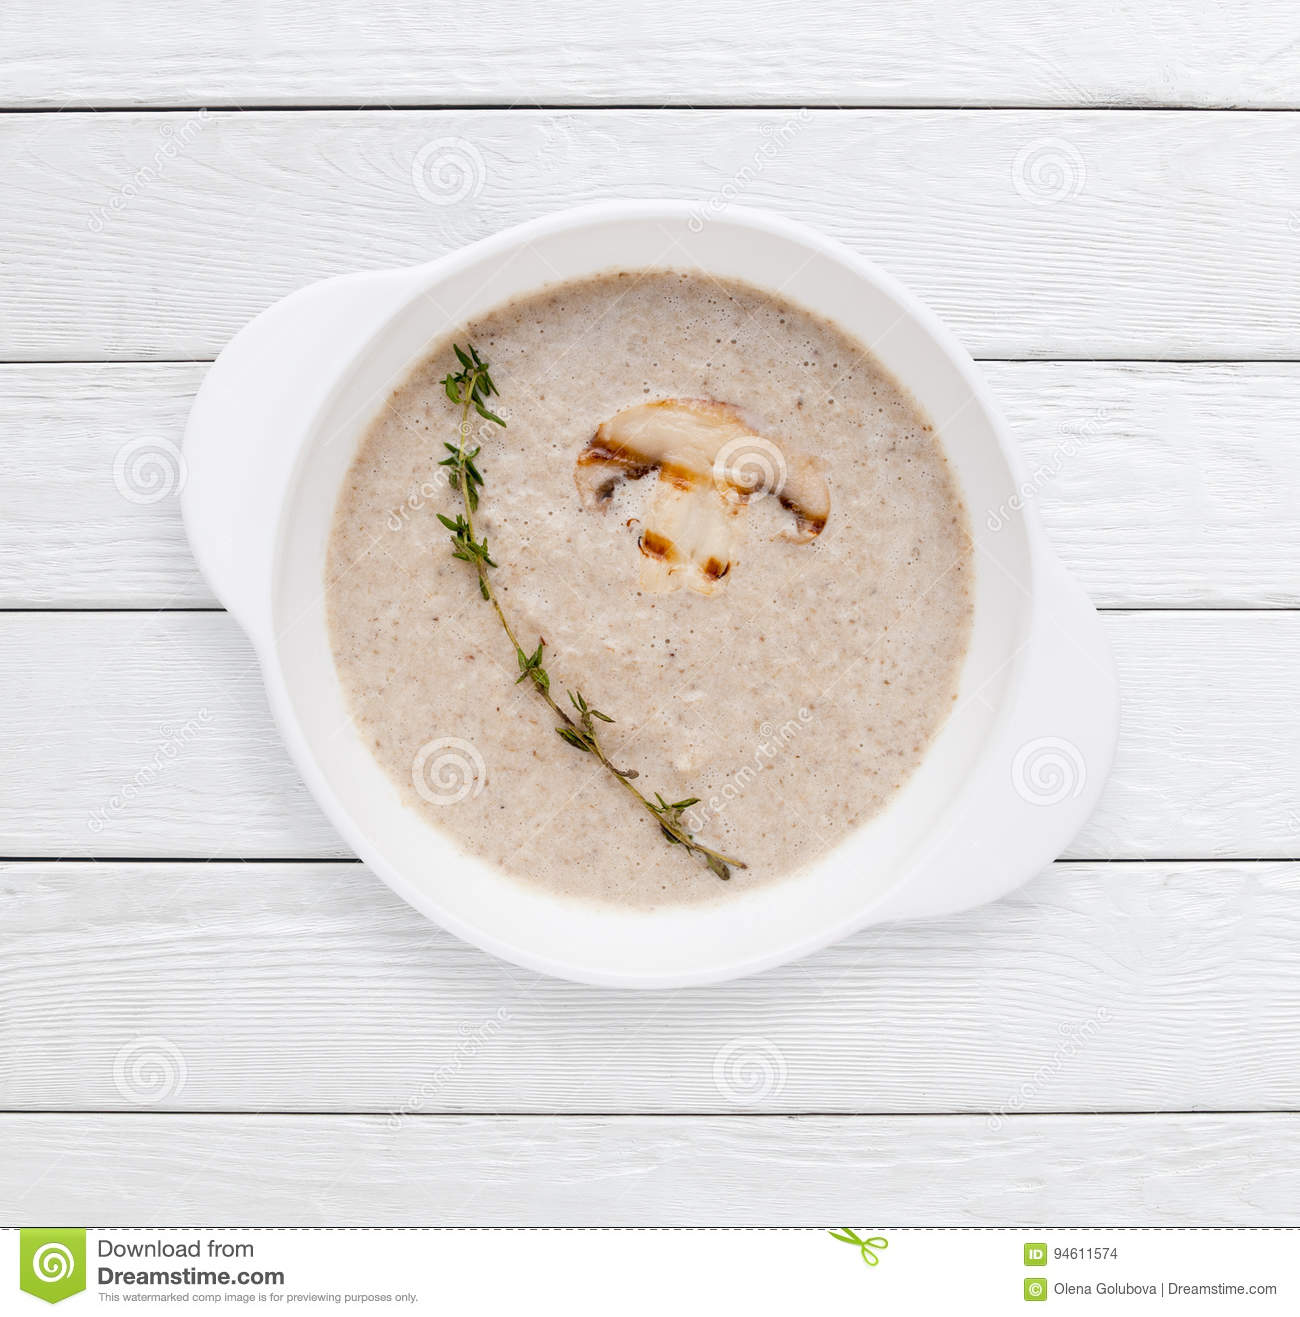 Background Champignon Cream Delicious Dish Food Healthy Homemade Lunch Mushroom Slice Soup